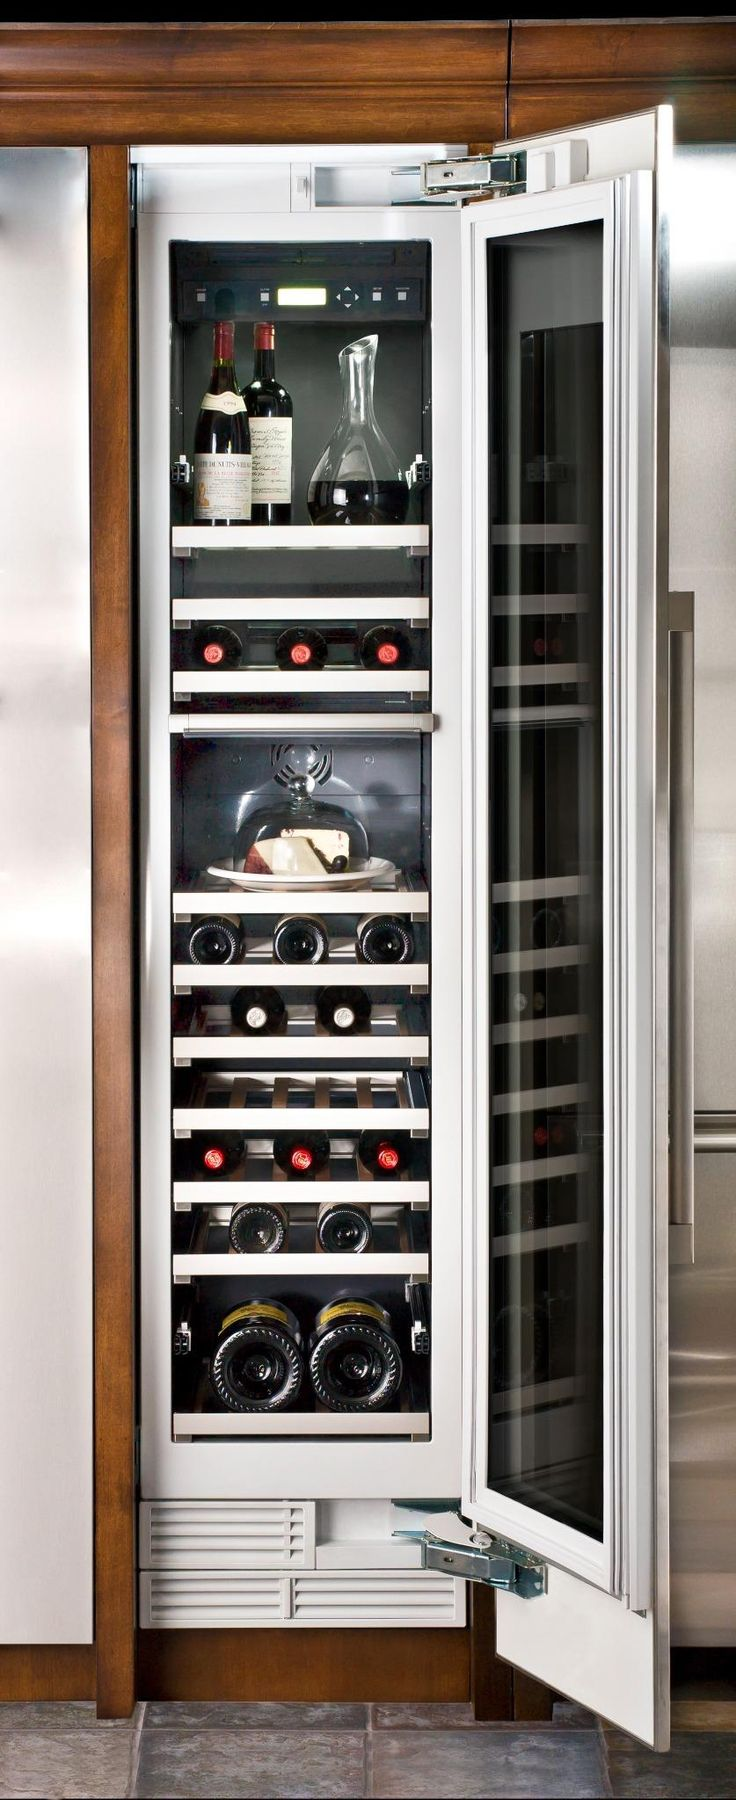 Thermador Freedom Collection #Wine Columns have removable shelves that enable additional storage. More info at www.purcellmurray.com